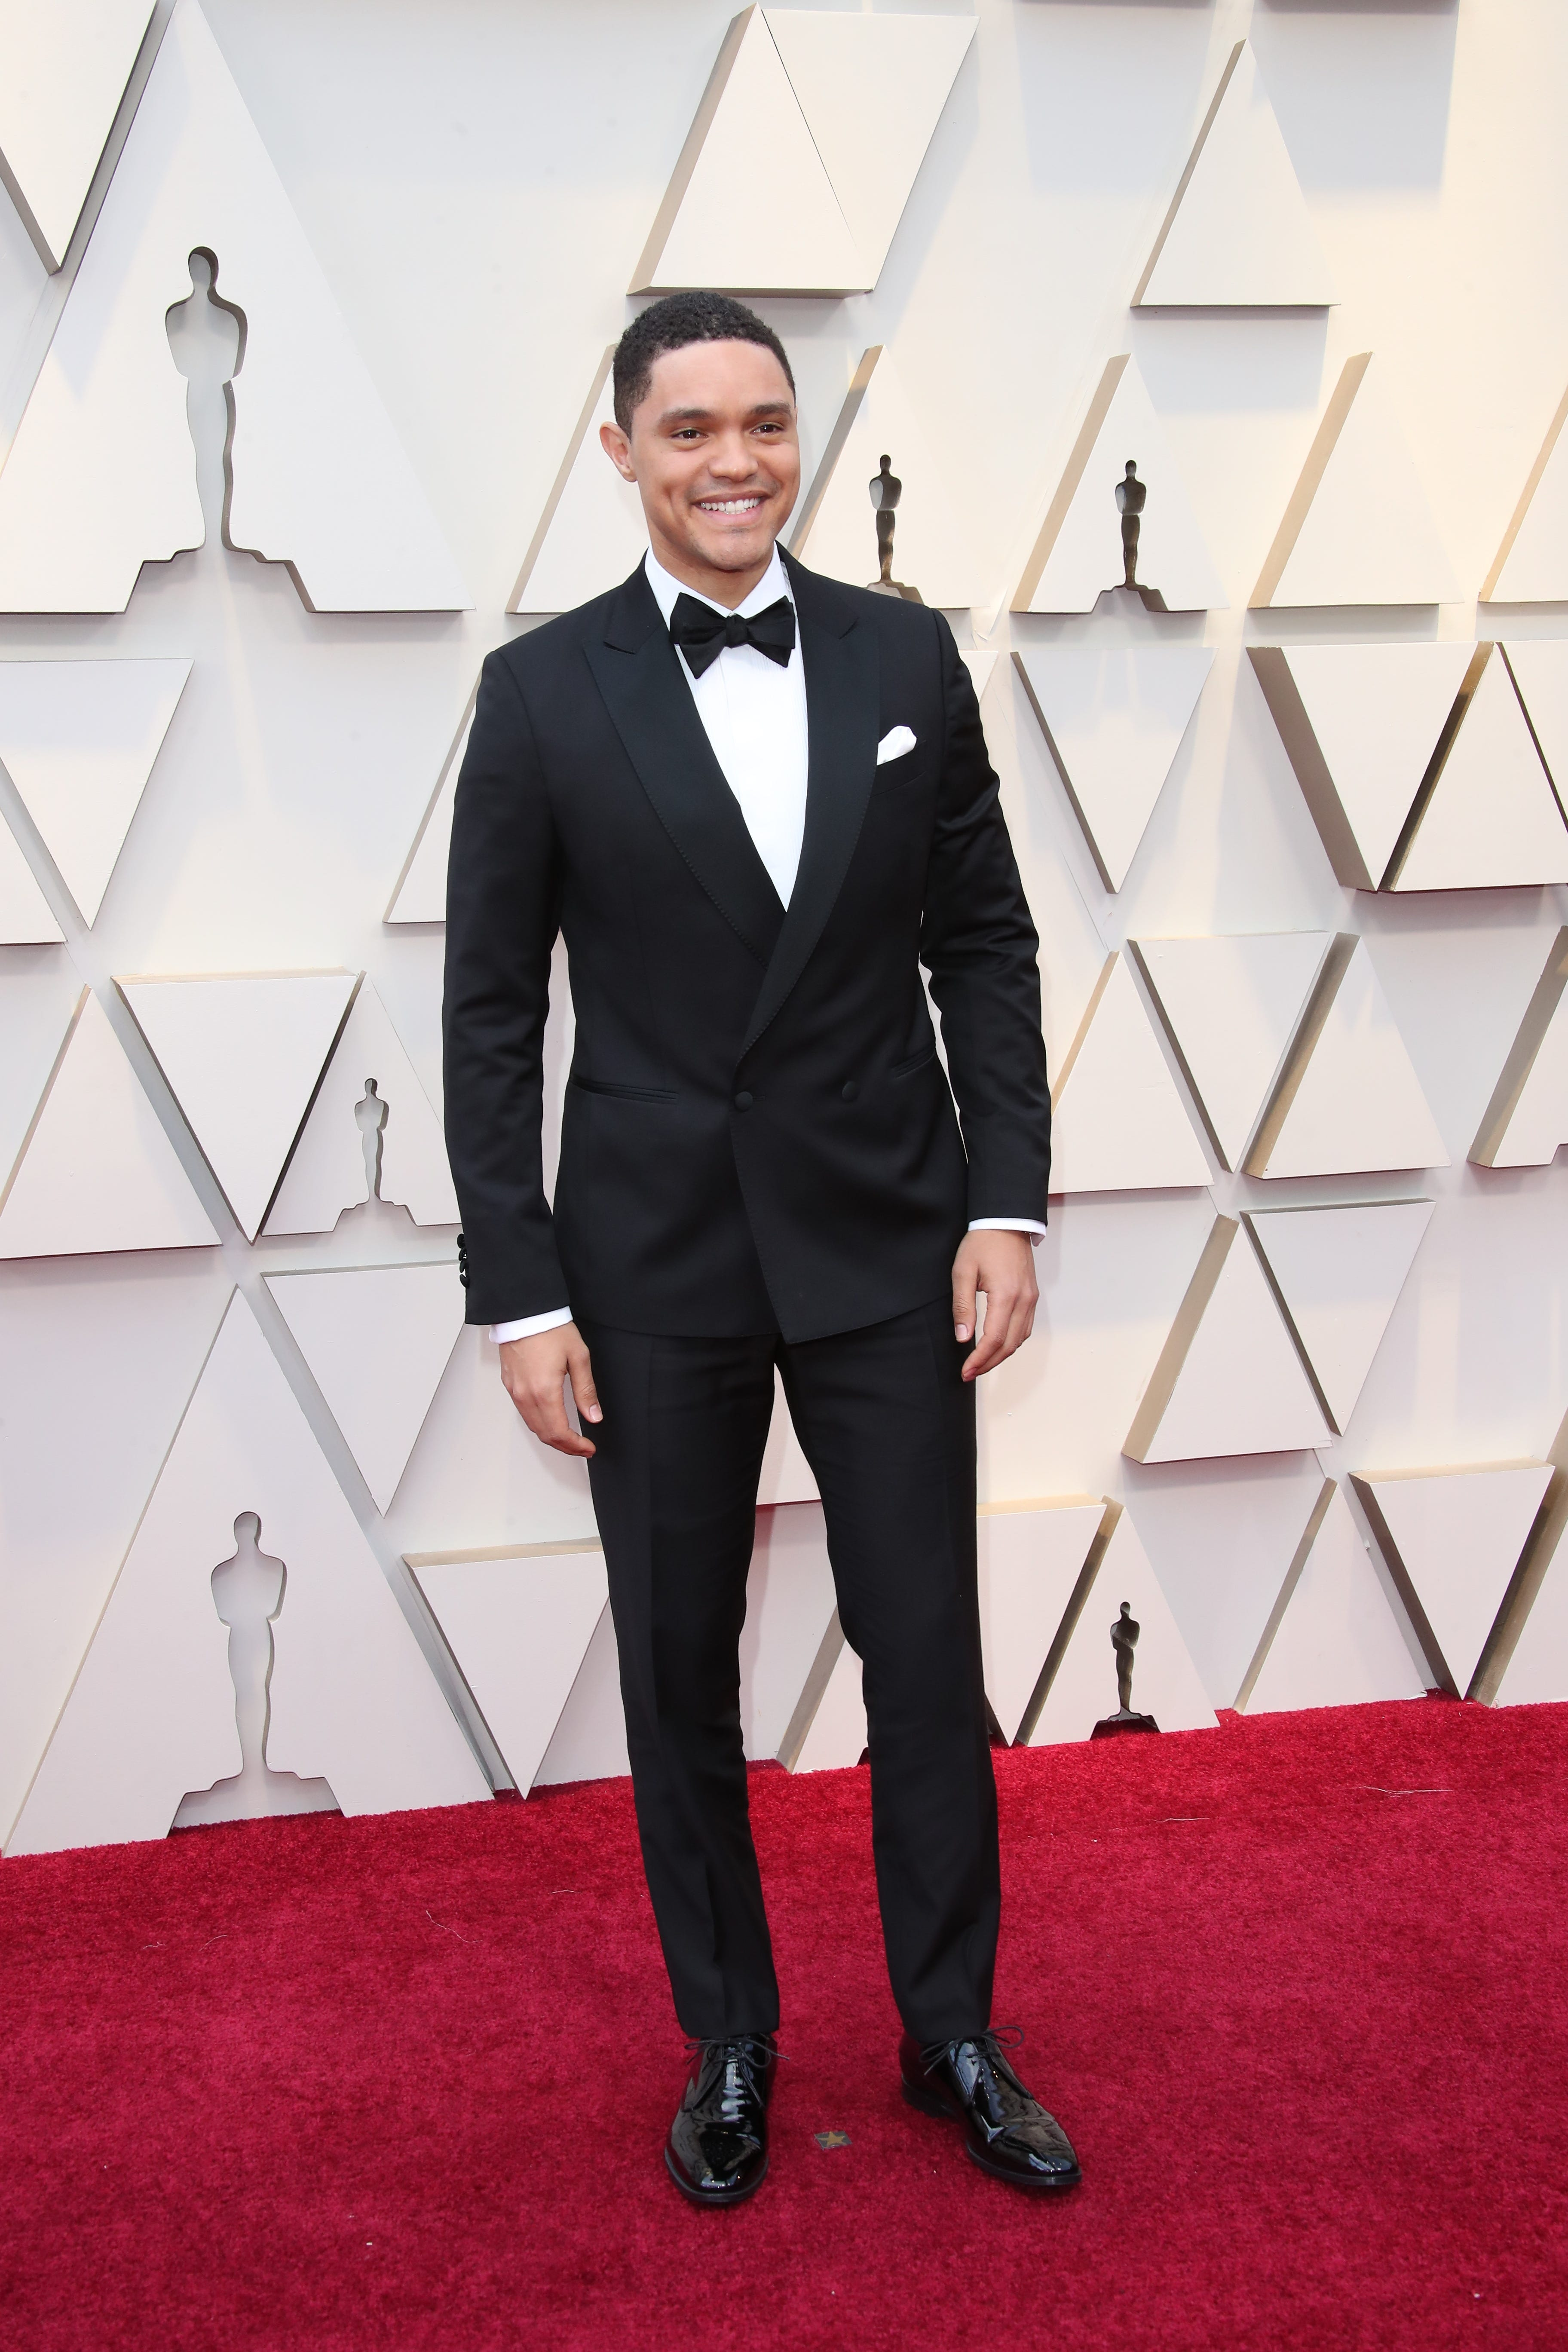 February 24, 2019; Los Angeles, CA, USA; Trevor Noah arrives at the 91st Academy Awards at the Dolby Theatre. Mandatory Credit: Dan MacMedan-USA TODAY NETWORK (Via OlyDrop)